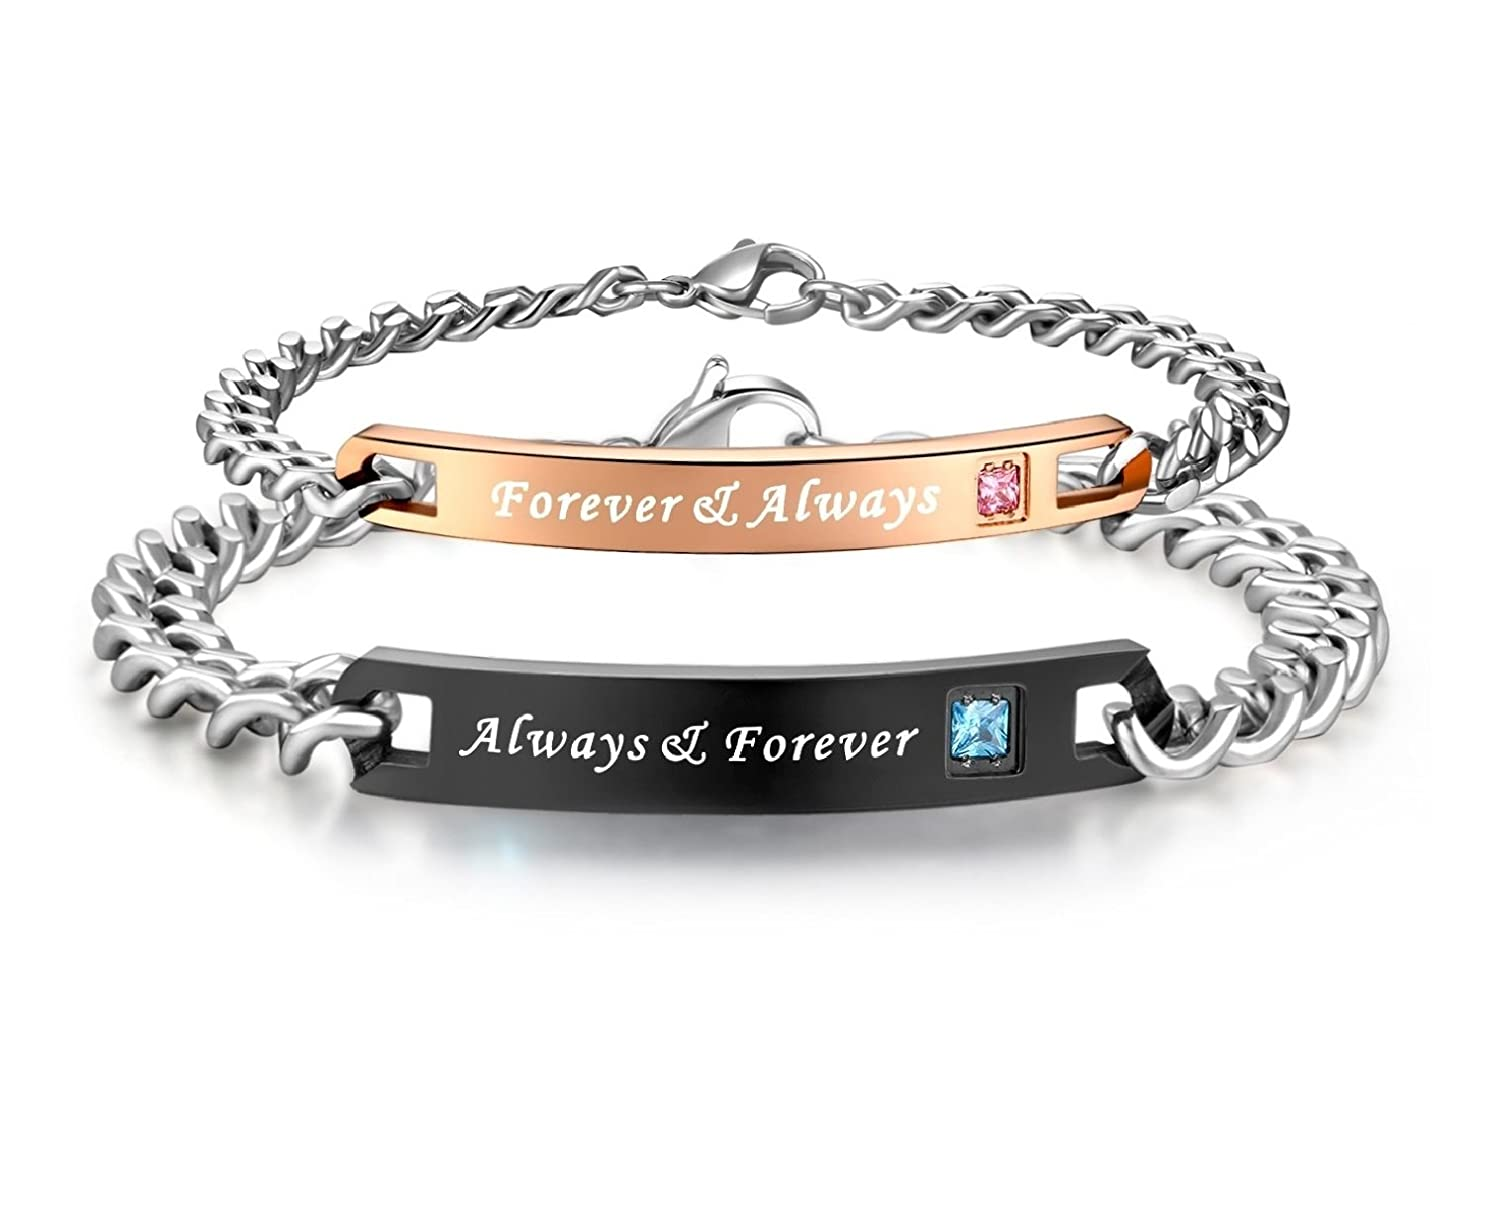 c41f725c24 Aegean Jewelry Always & Forever Bracelets Stainless Steel Matching Set  Chain Bracelet for Couple, with a Gift Box